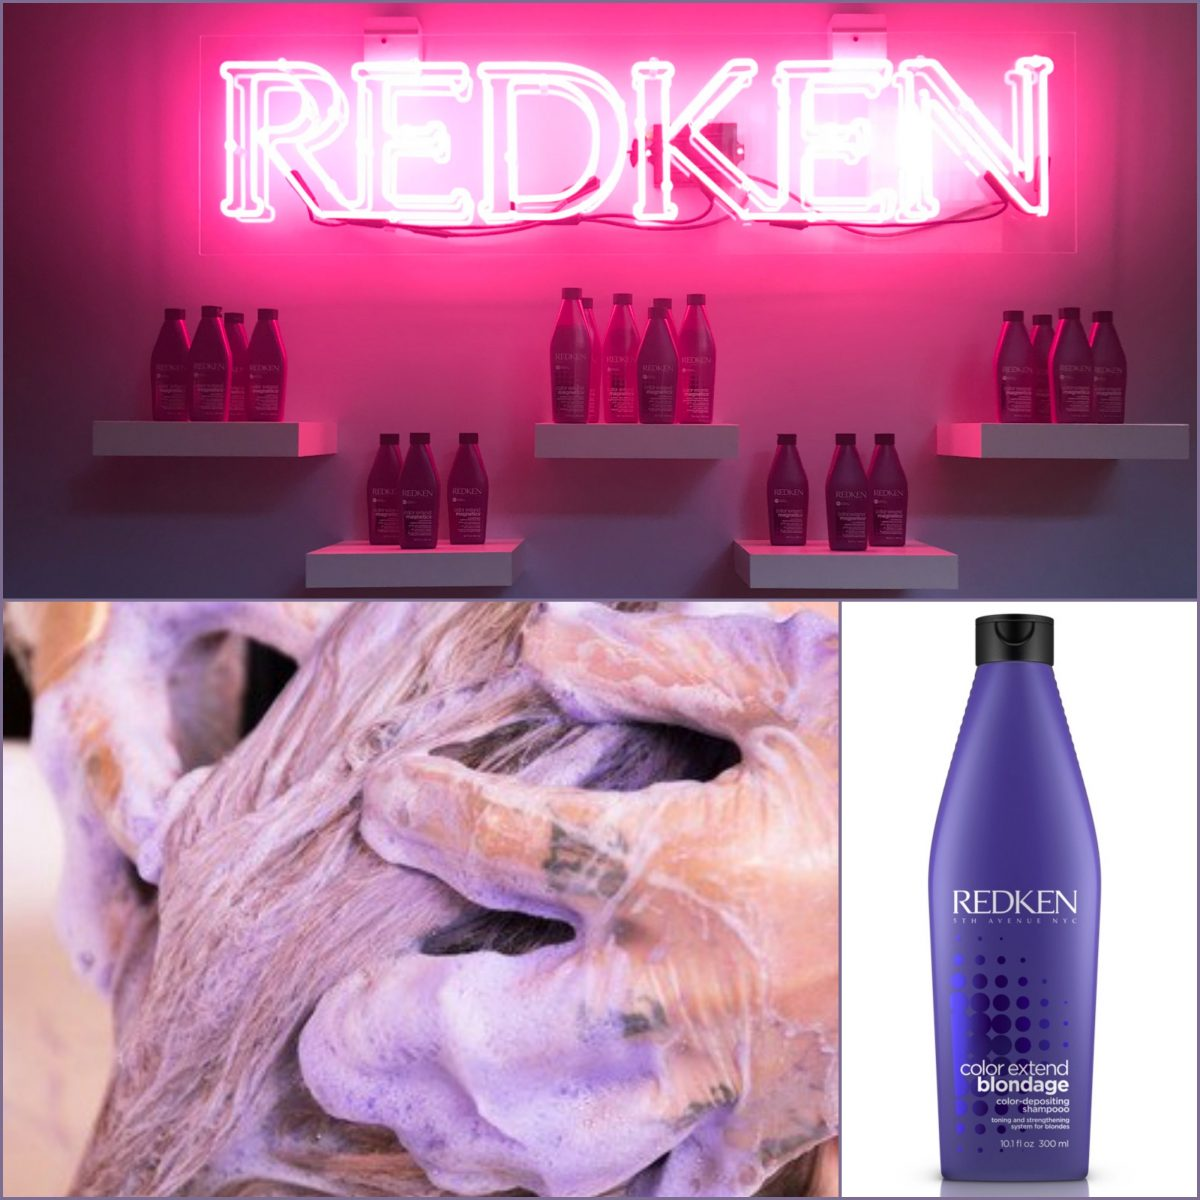 Bid Brassy Hair Goodbye With Redken's Color Extend Blondage